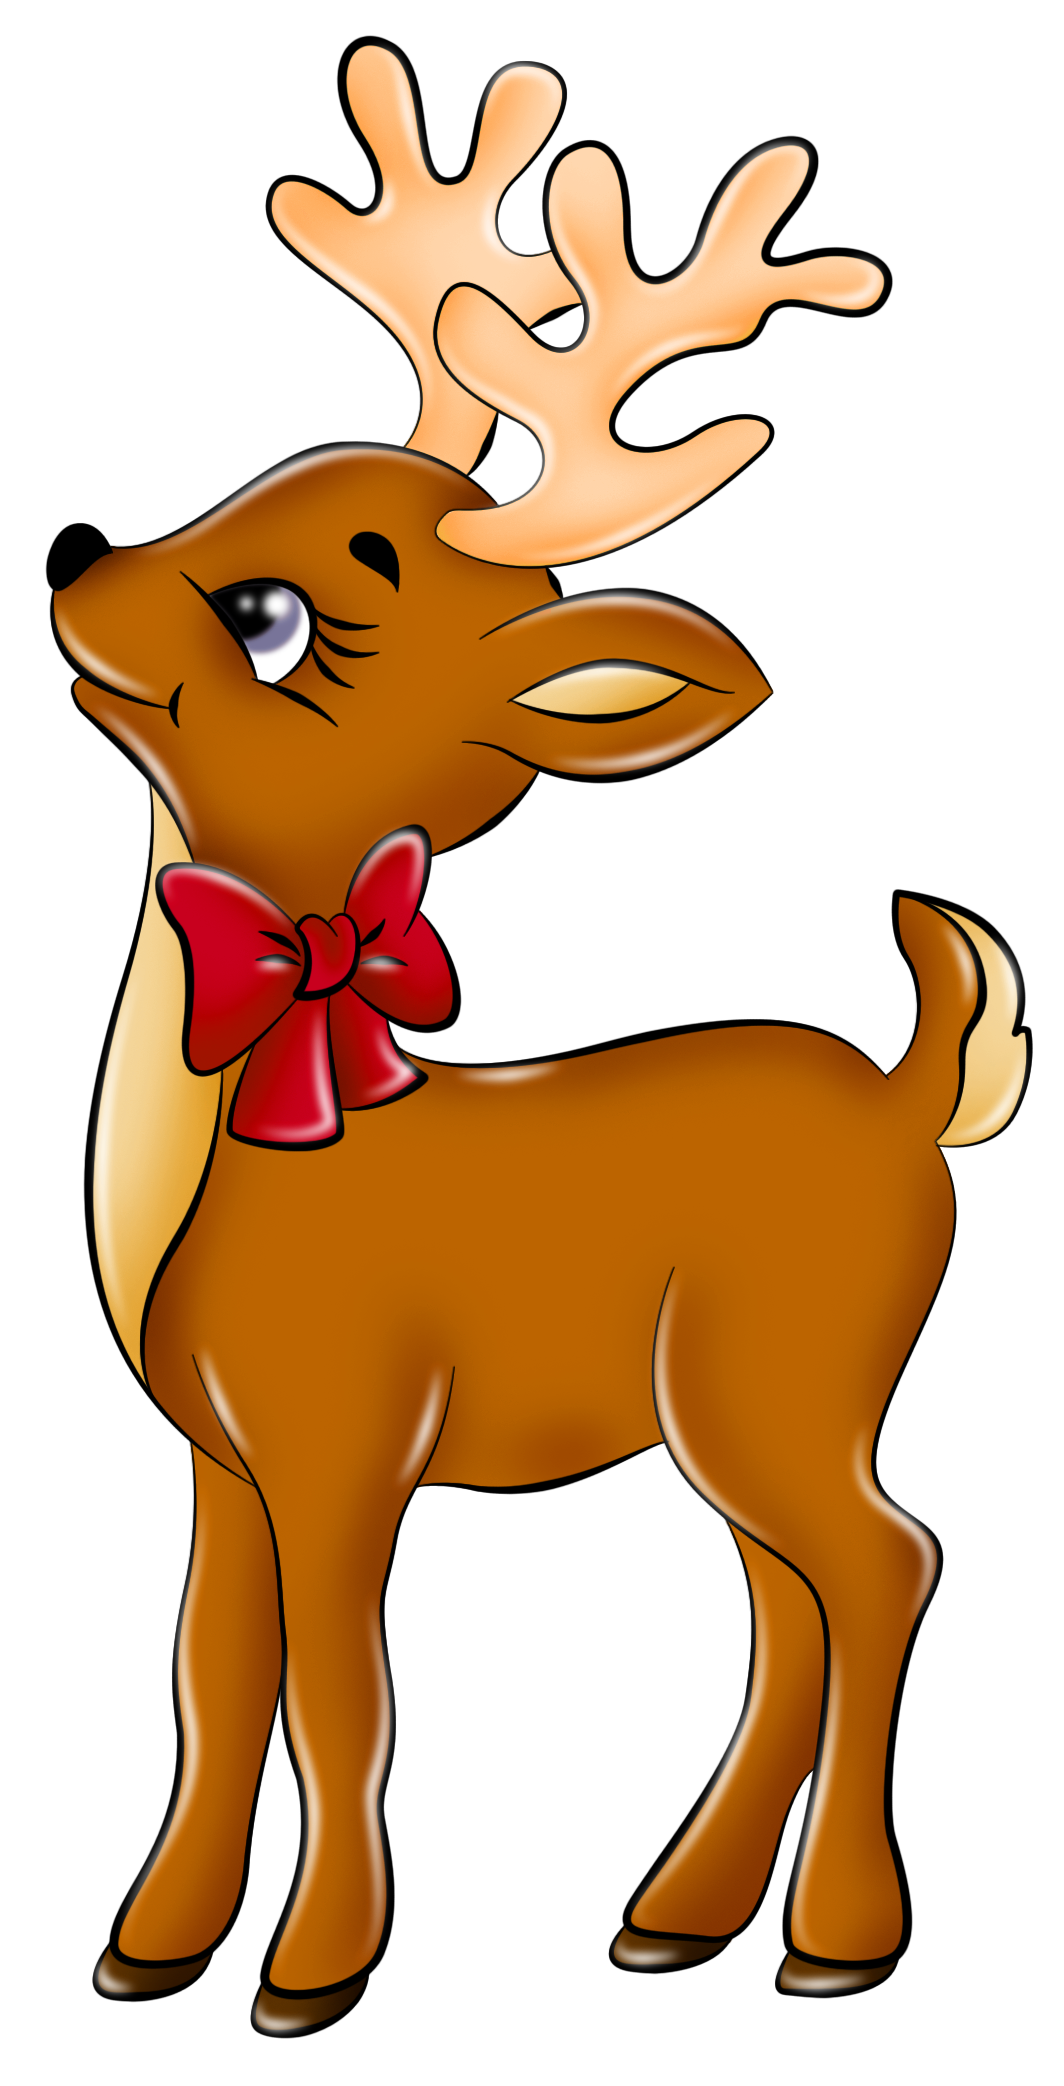 1064x2086 Glamorous Reindeer Clipart Cute Clip Art Free Holiday Christmas